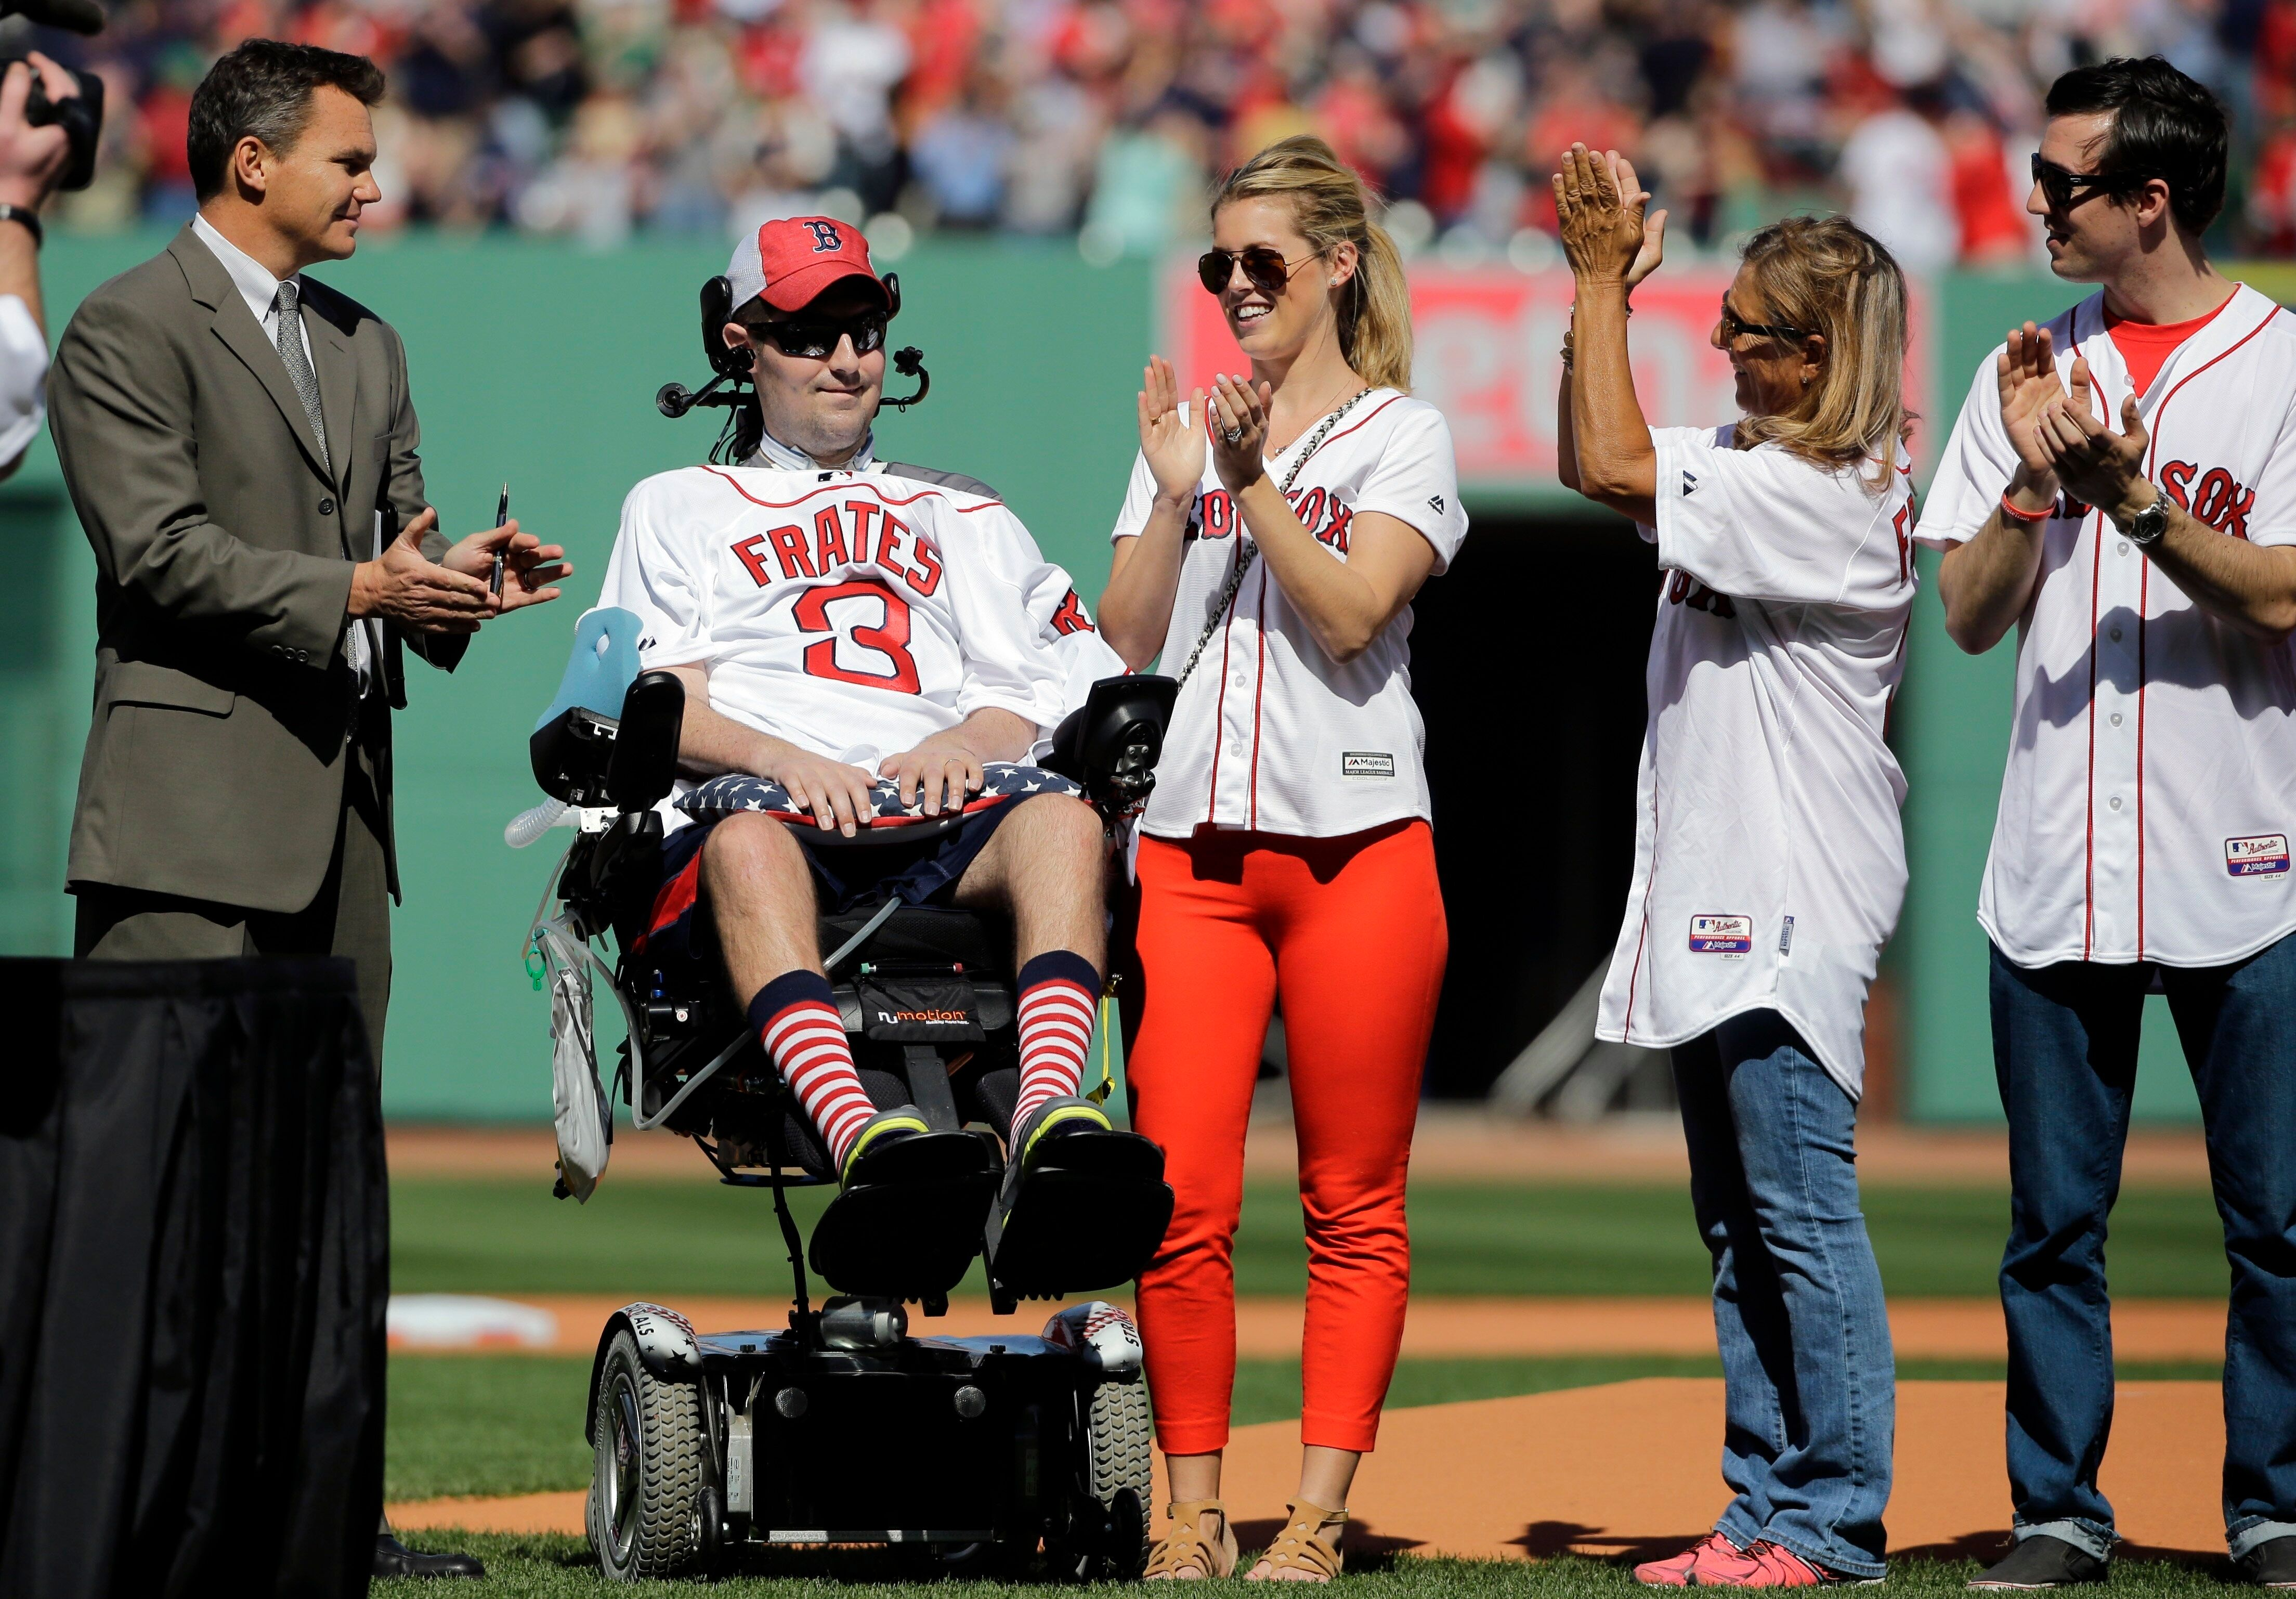 Pete Frates, a former Boston College baseball player whose Ice Bucket Challenge raised millions for ALS research, died last D